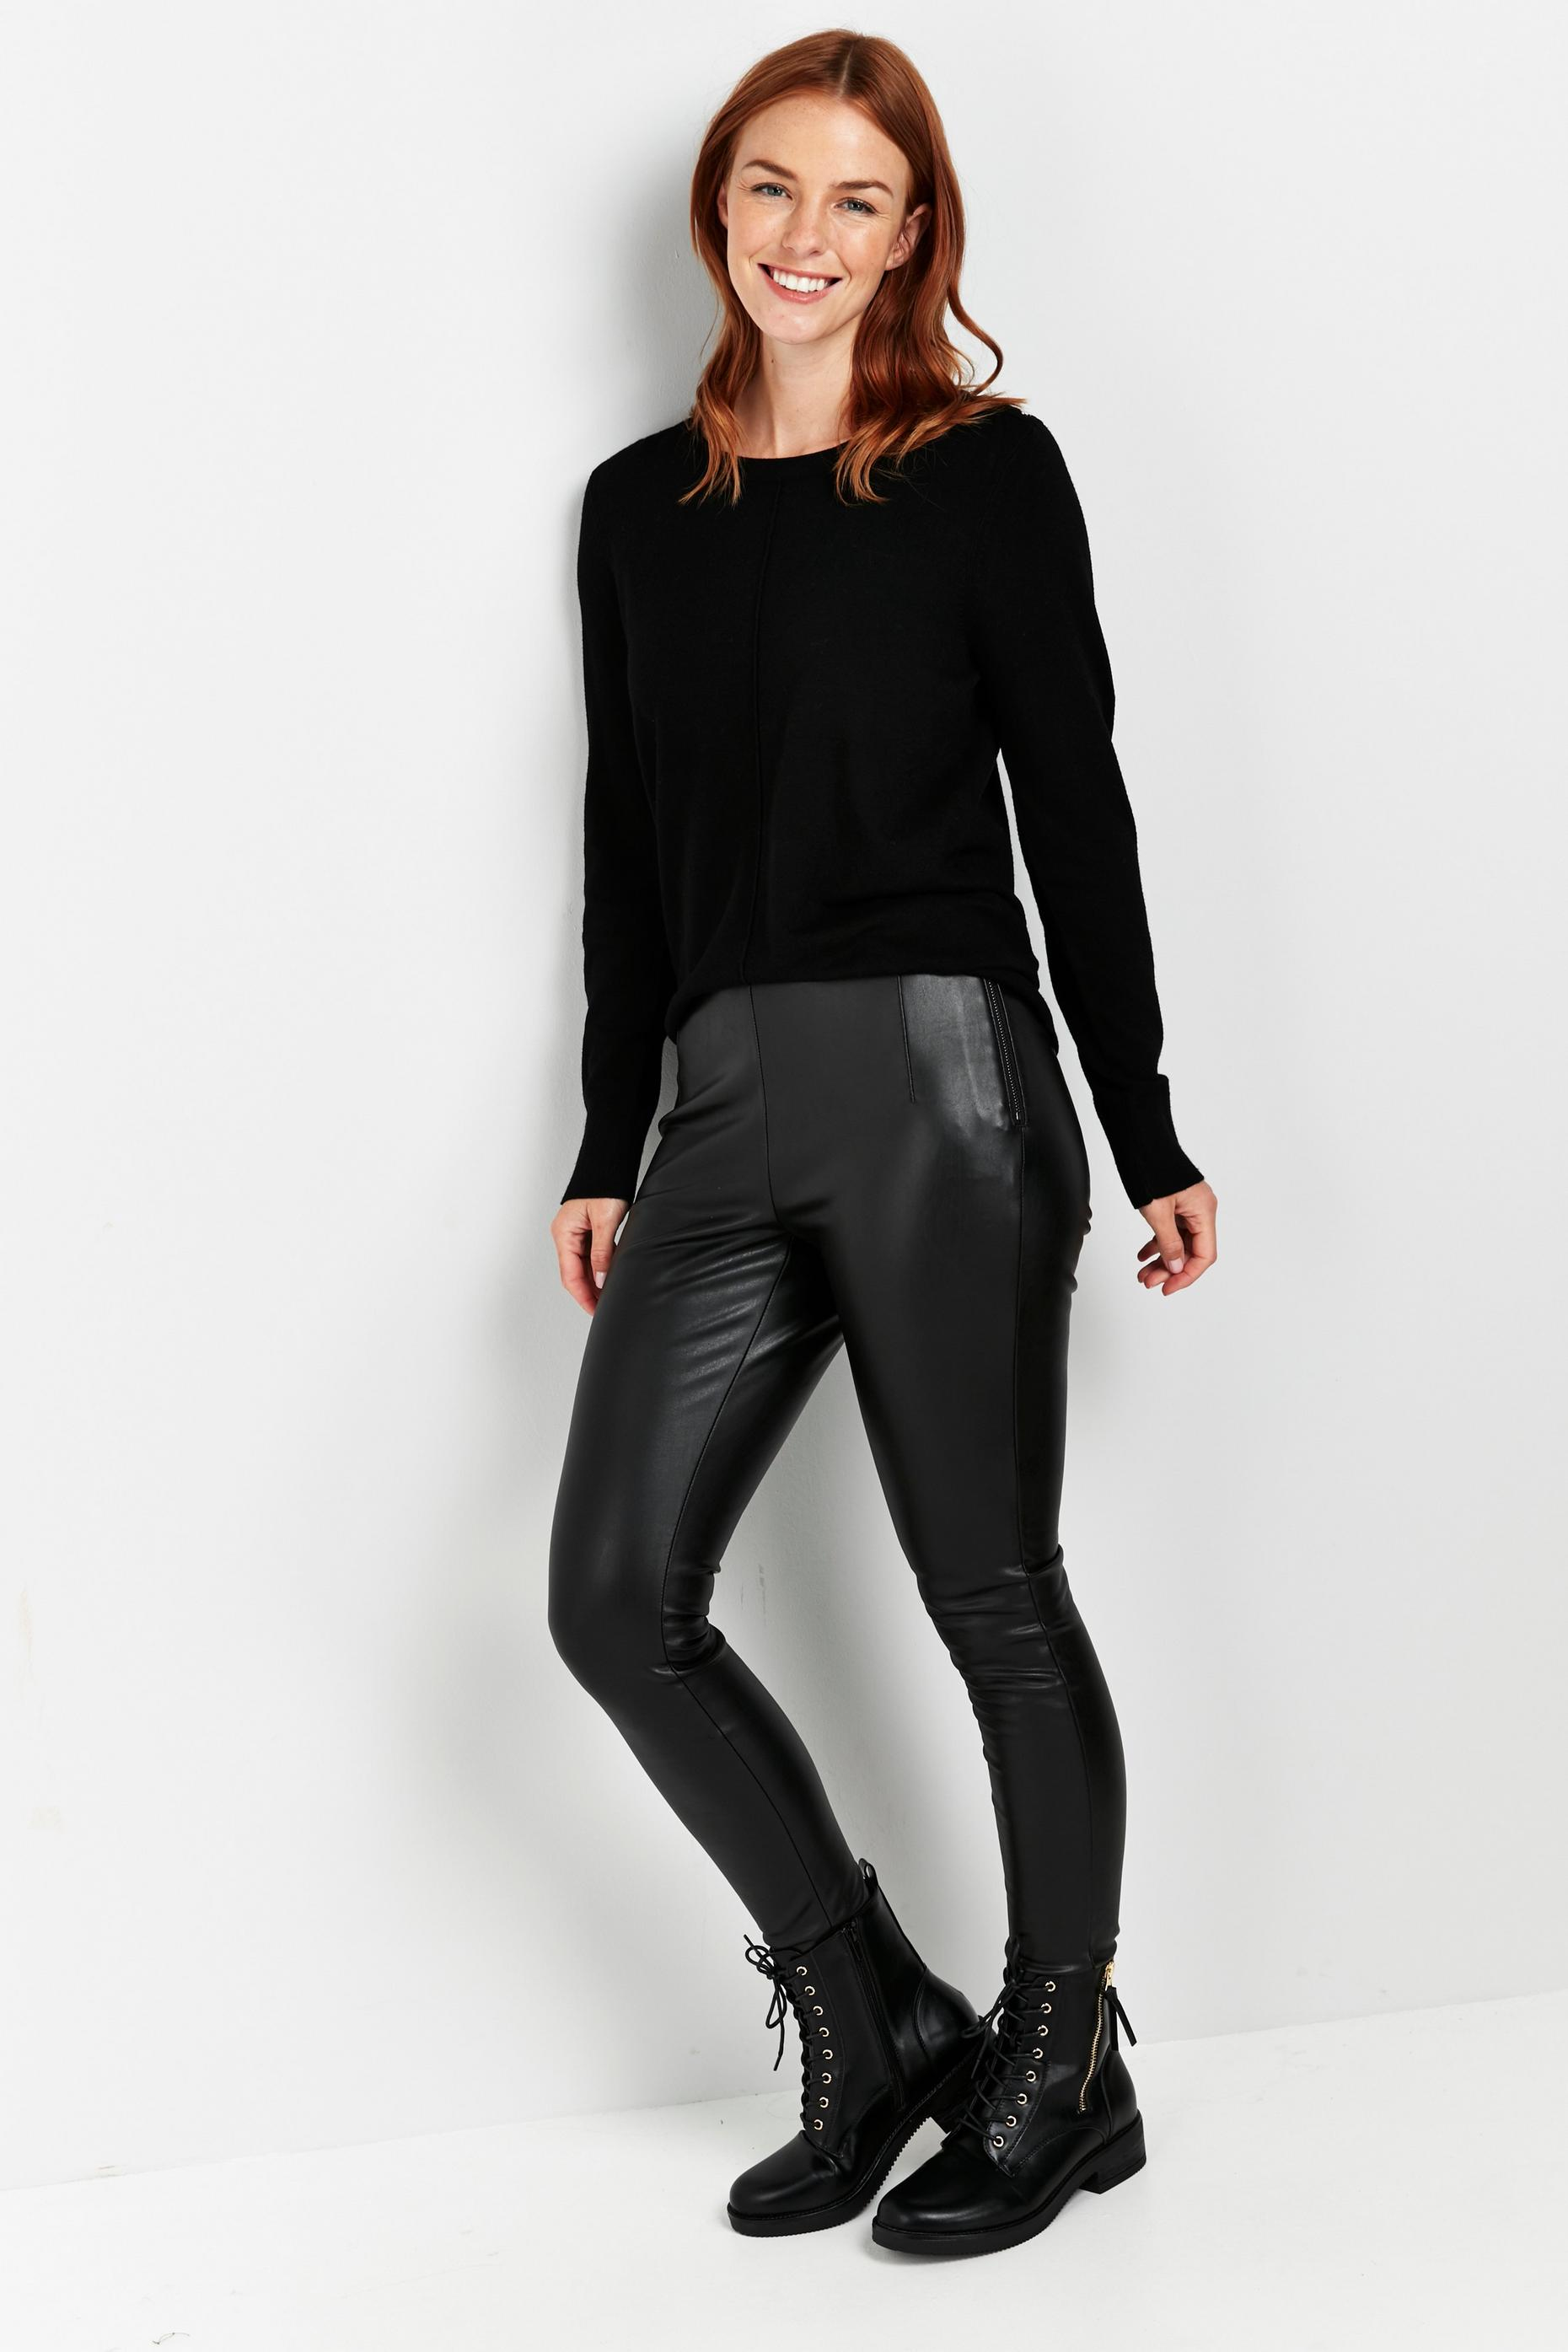 PETITE Black Faux Leather Legging